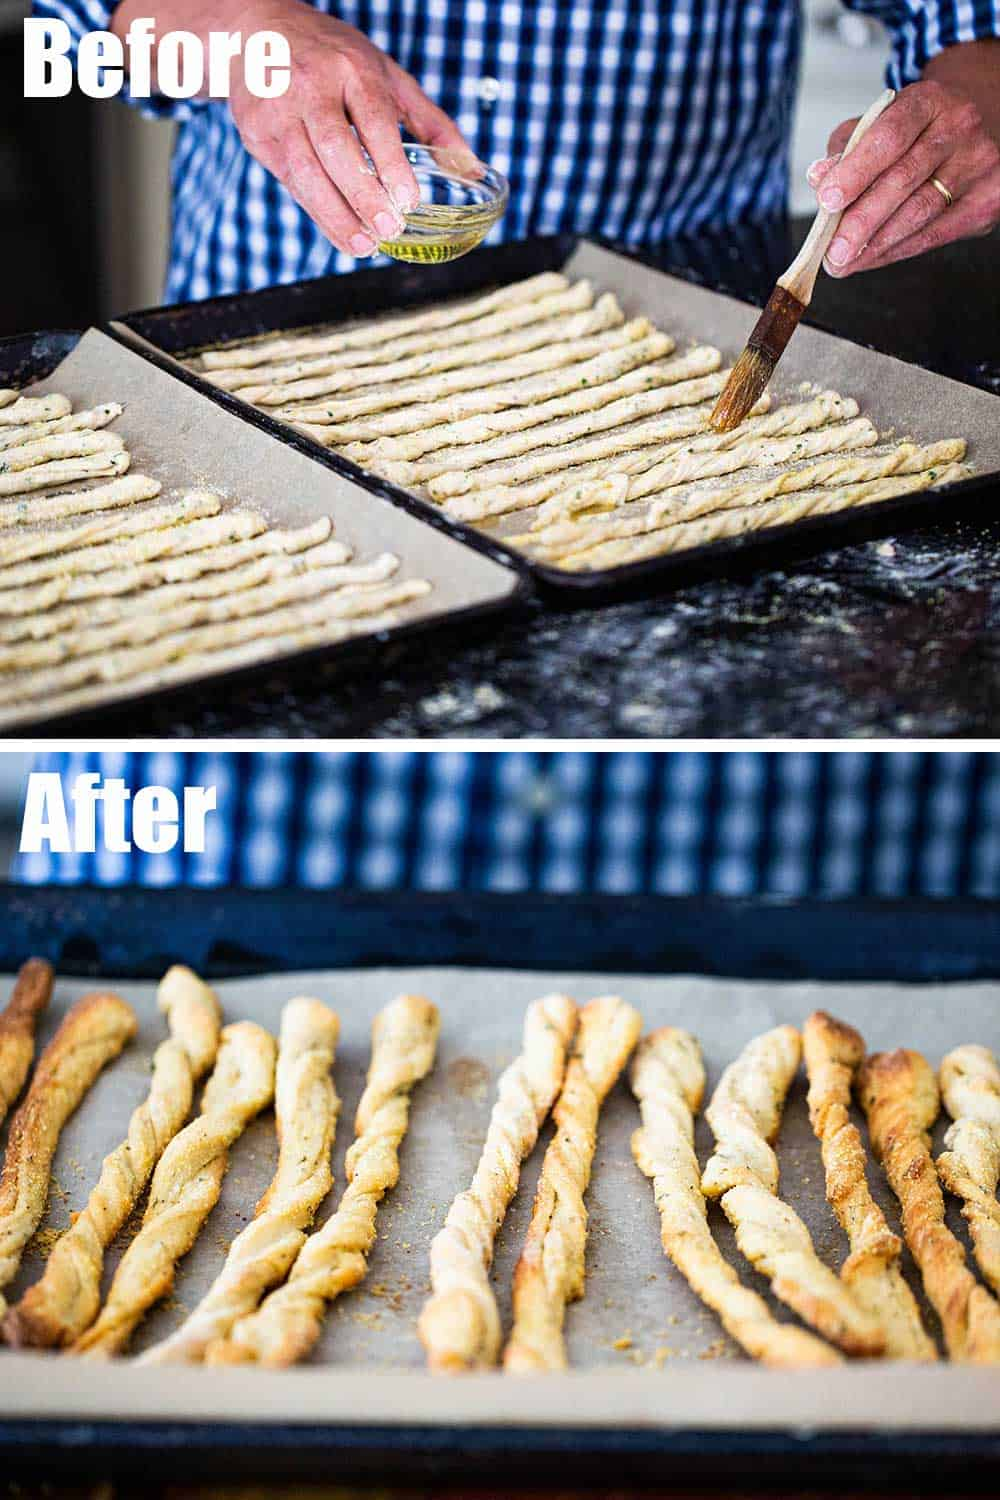 Two baking sheets filled with unbaked grissini being brushed with oil and then the bread after being baked.